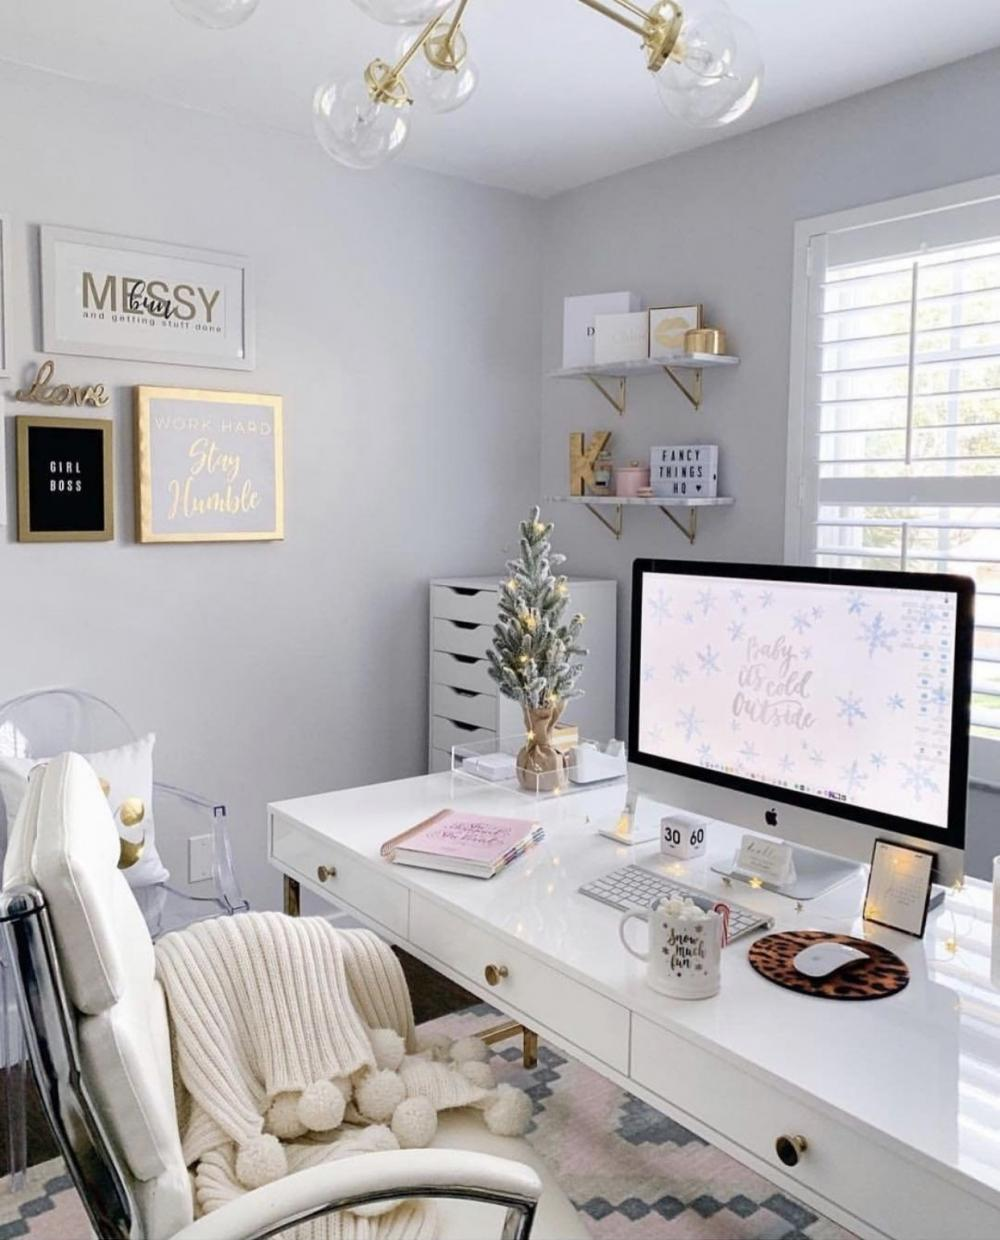 White color perfectly visually enlarges the space